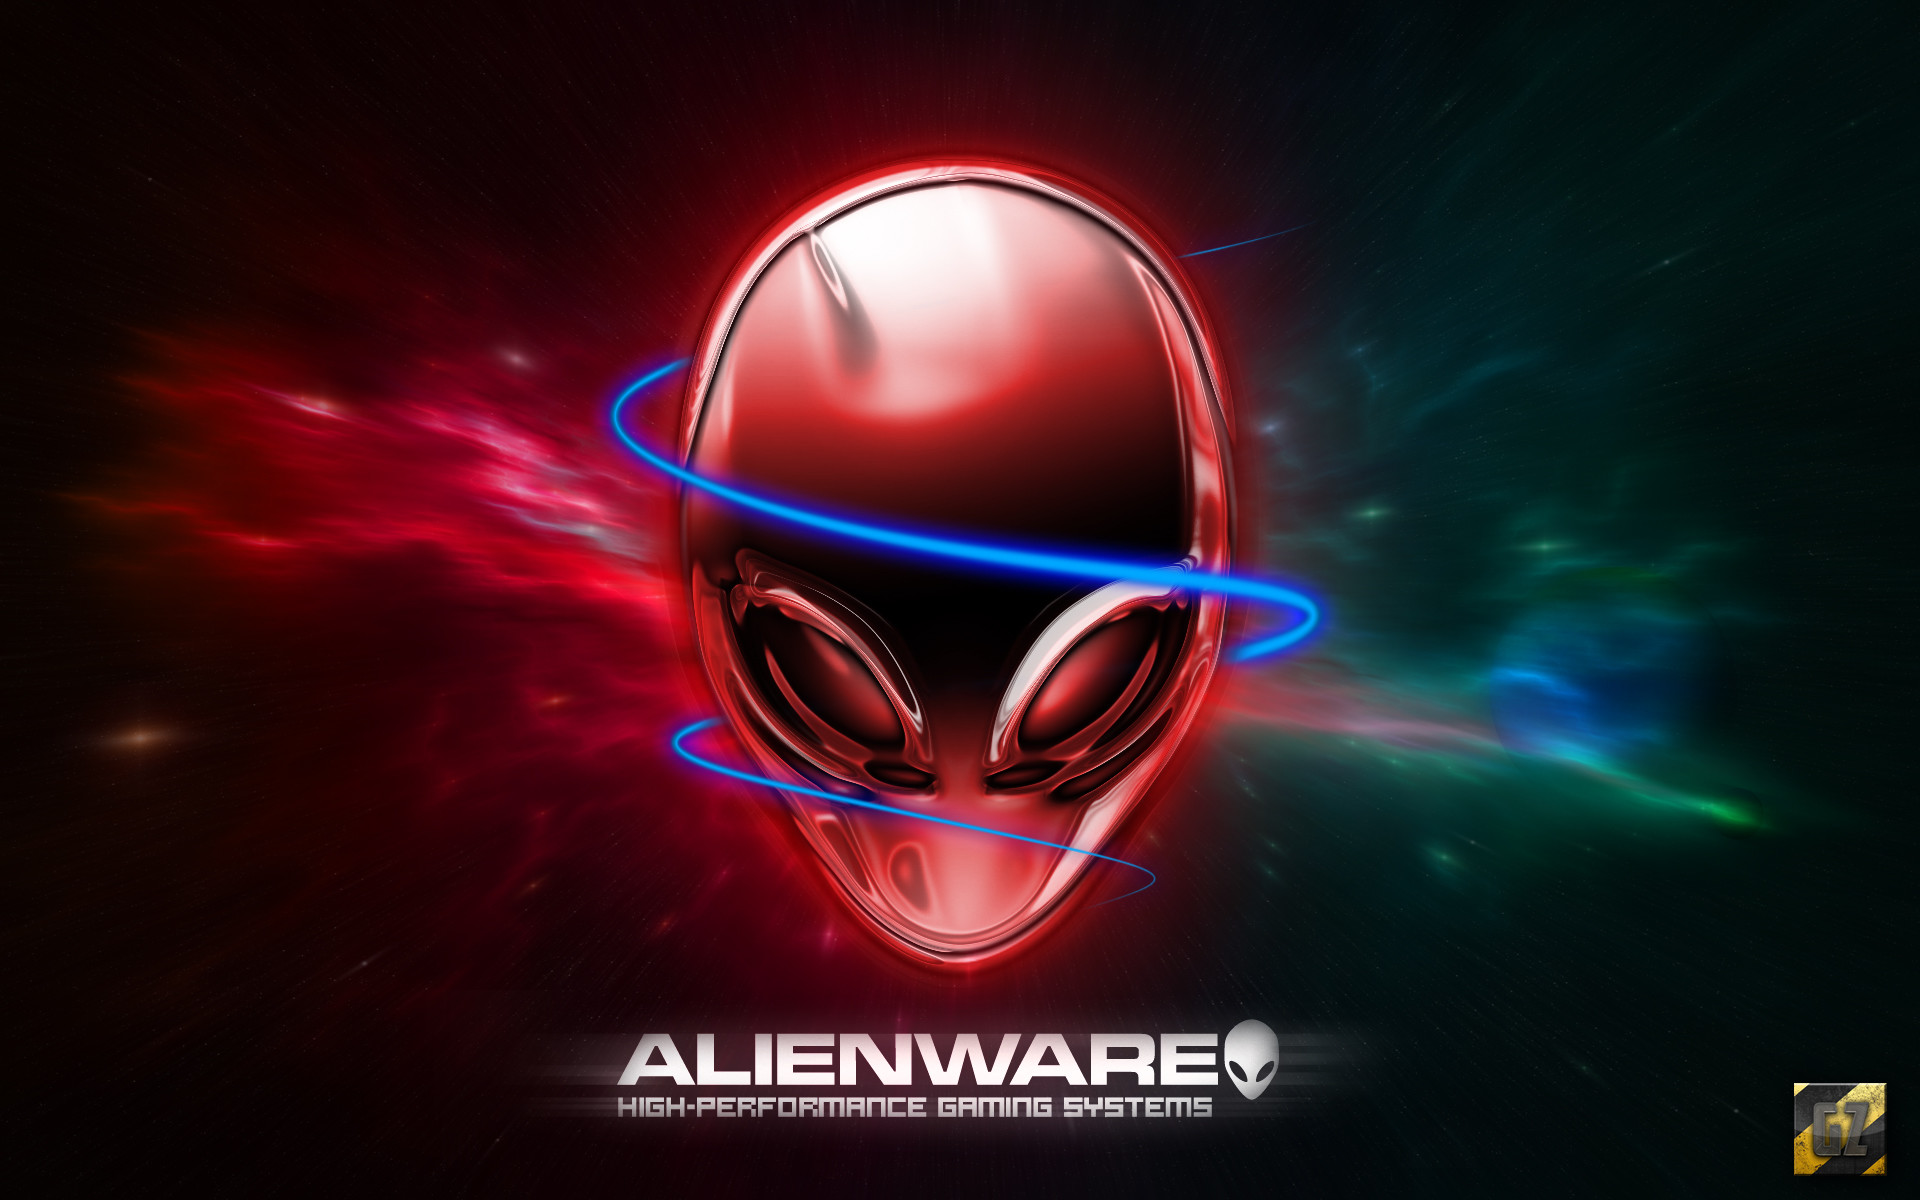 Alienware Wallpaper 1920x1080 Hd 80 Images